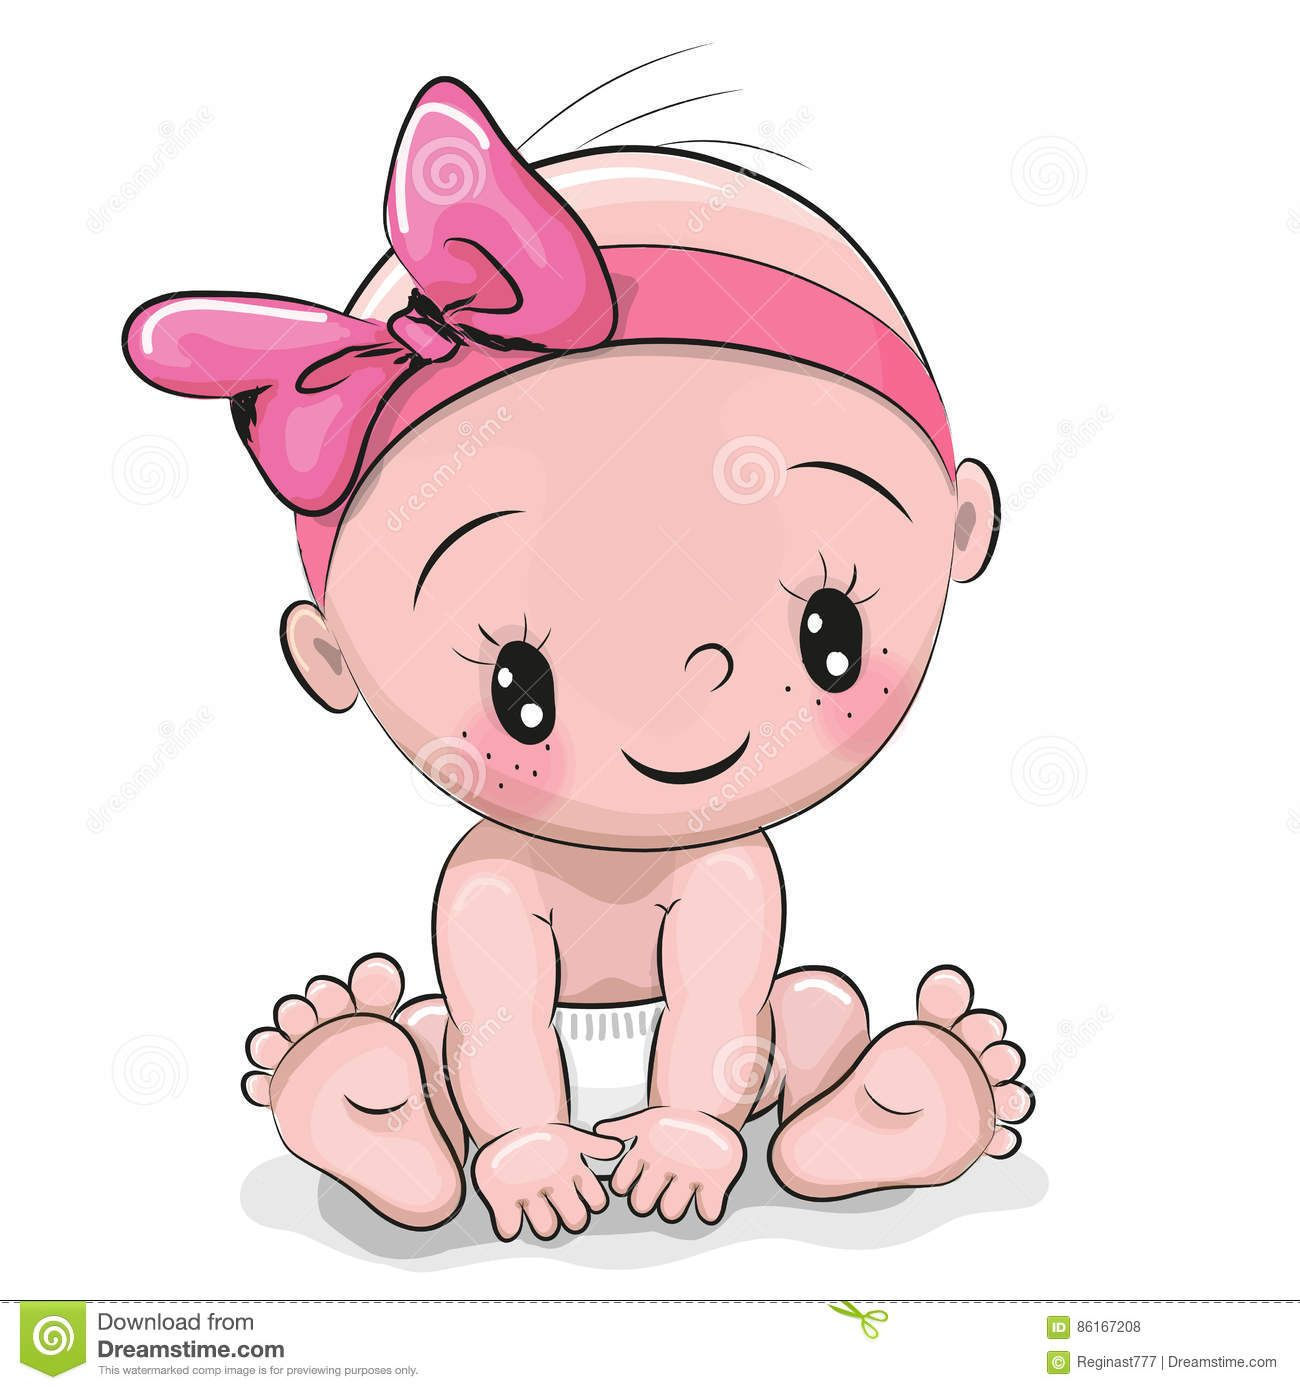 Cute Cartoon Baby Girl Download From Over 57 Million High Quality Stock Photos Images Vectors Sign Up Baby Cartoon Drawing Baby Girl Drawing Baby Painting